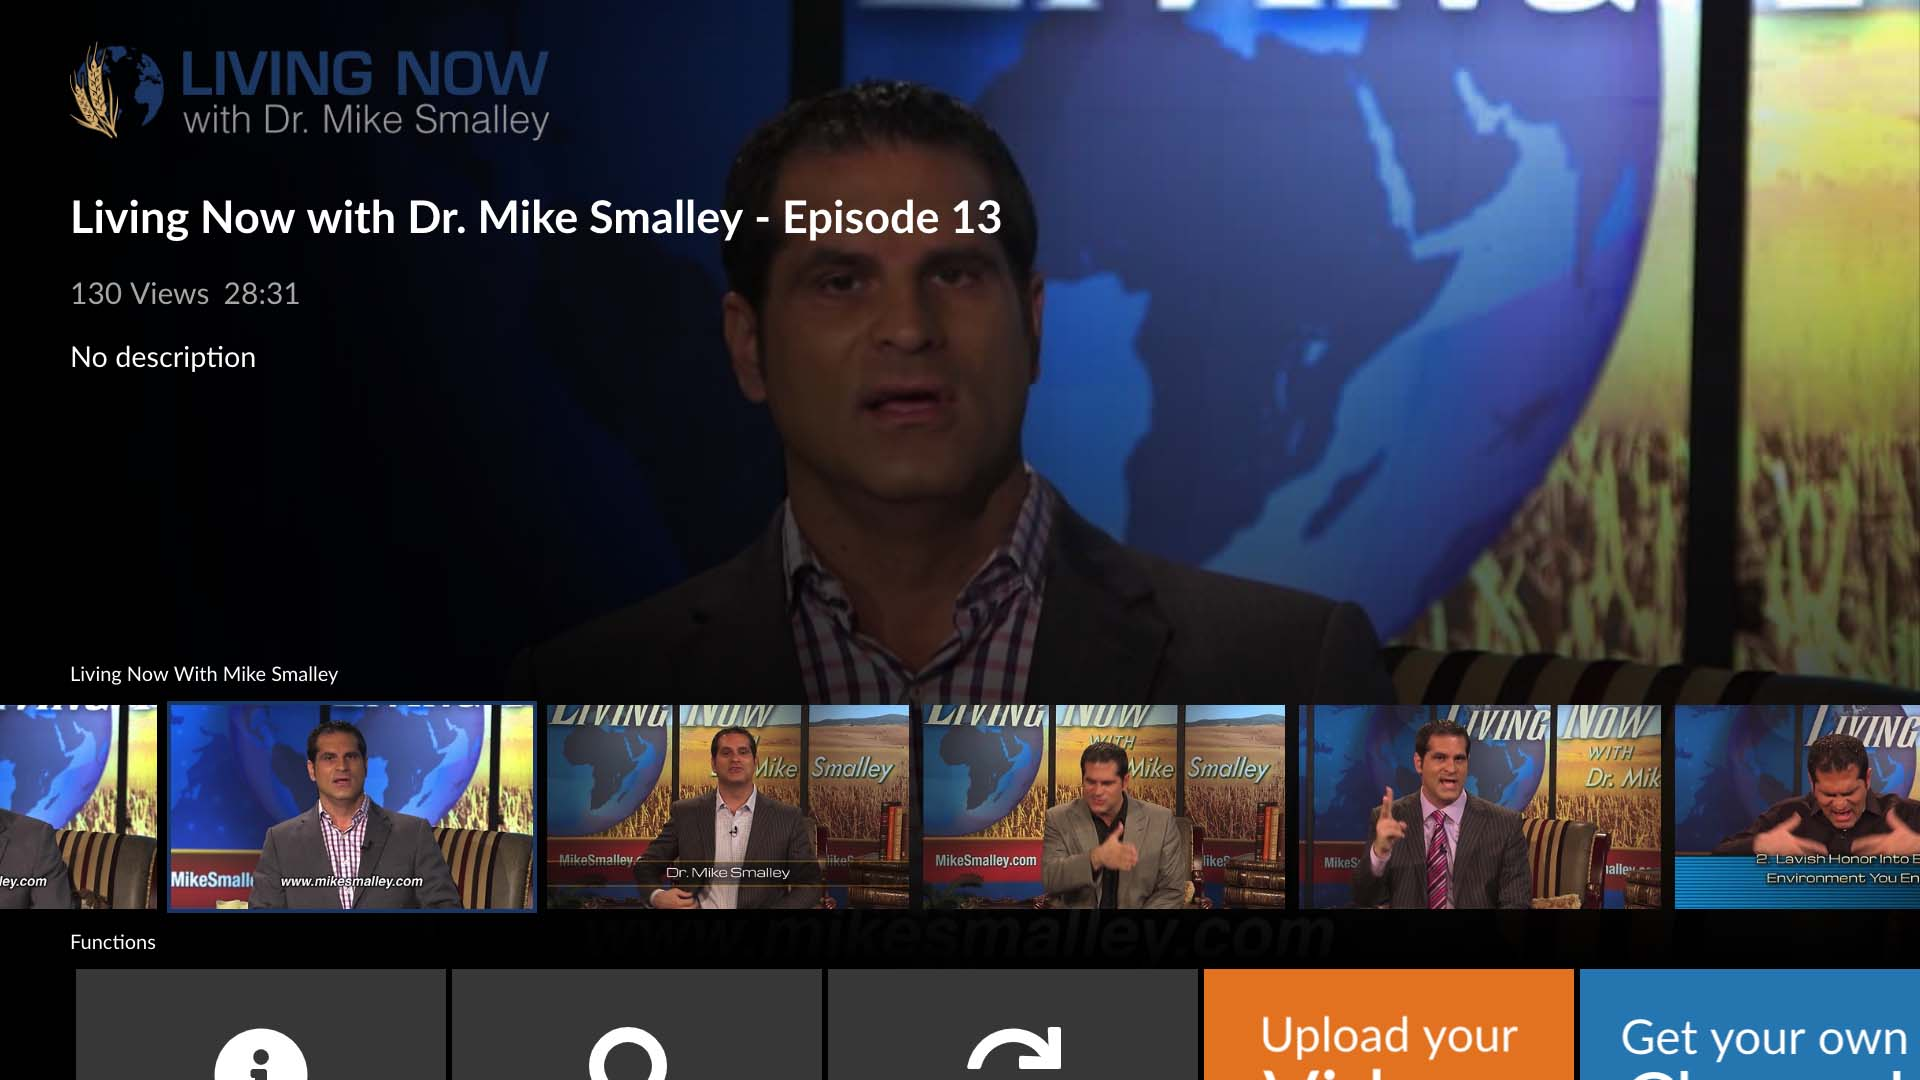 Living Now With Dr Mike Smalley Screenshot 001